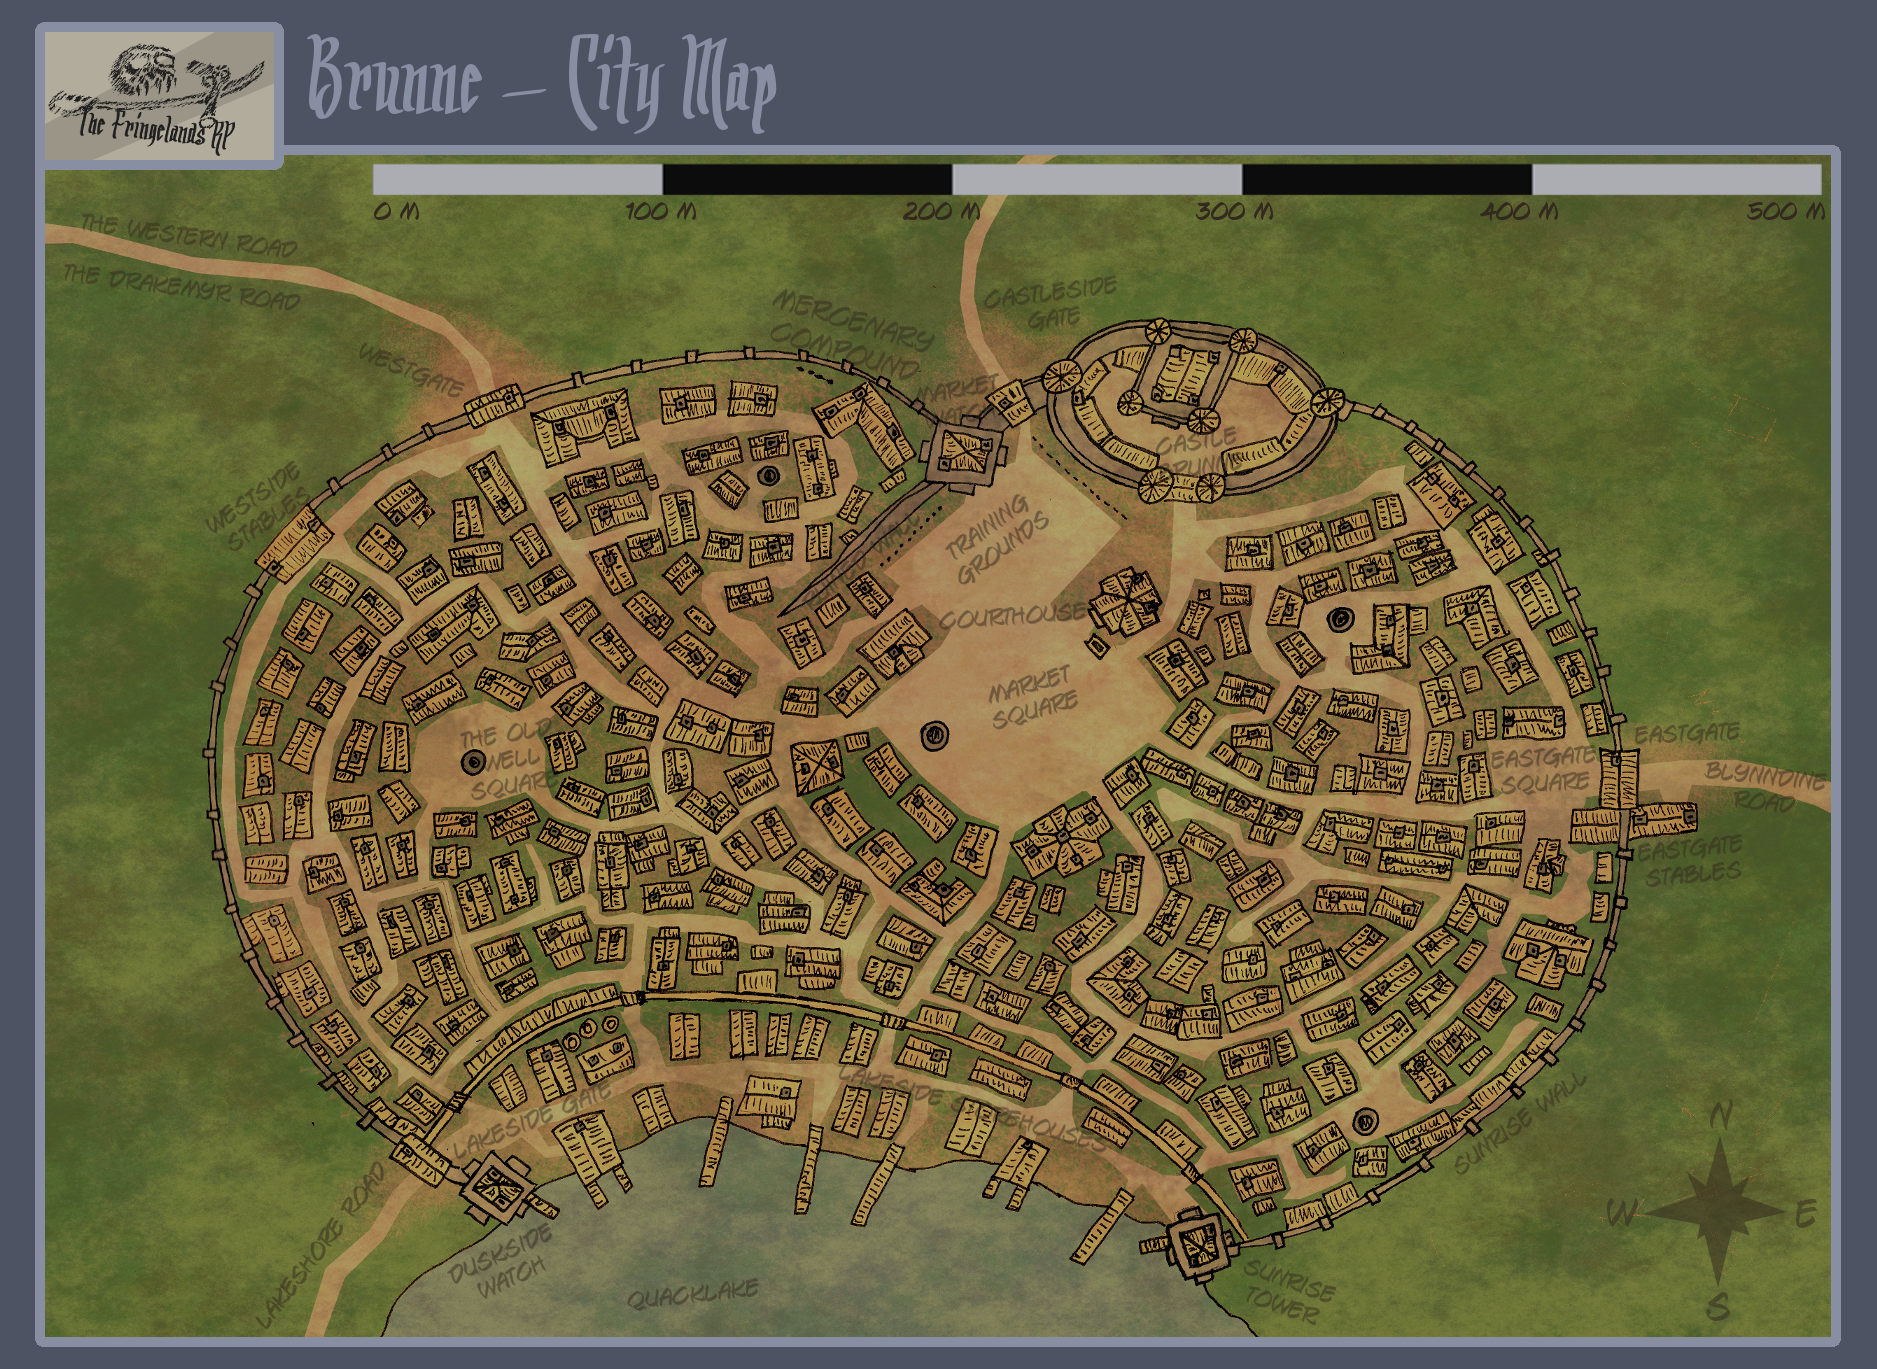 Fringeland City Map - Brunne by WeeRLegion